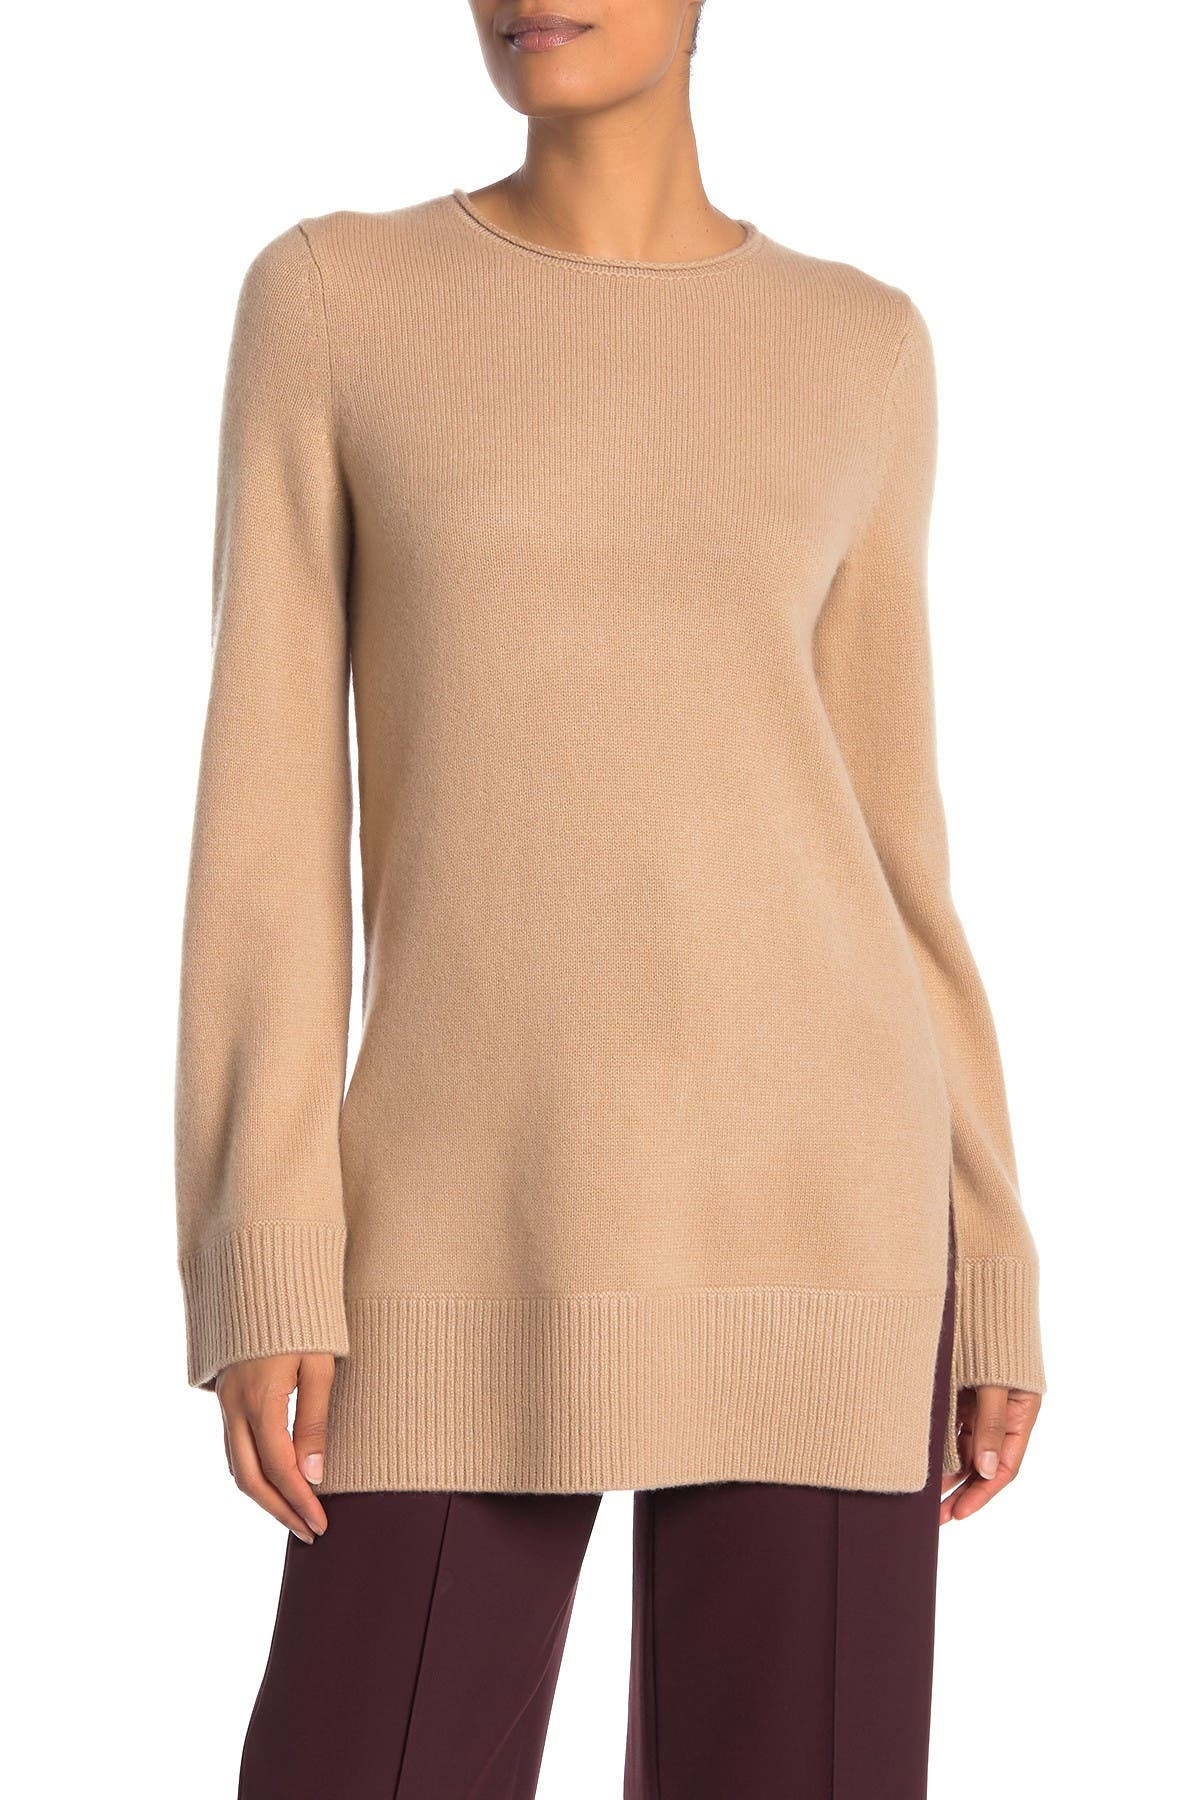 Image of Vince Cashmere Crew Neck Tunic